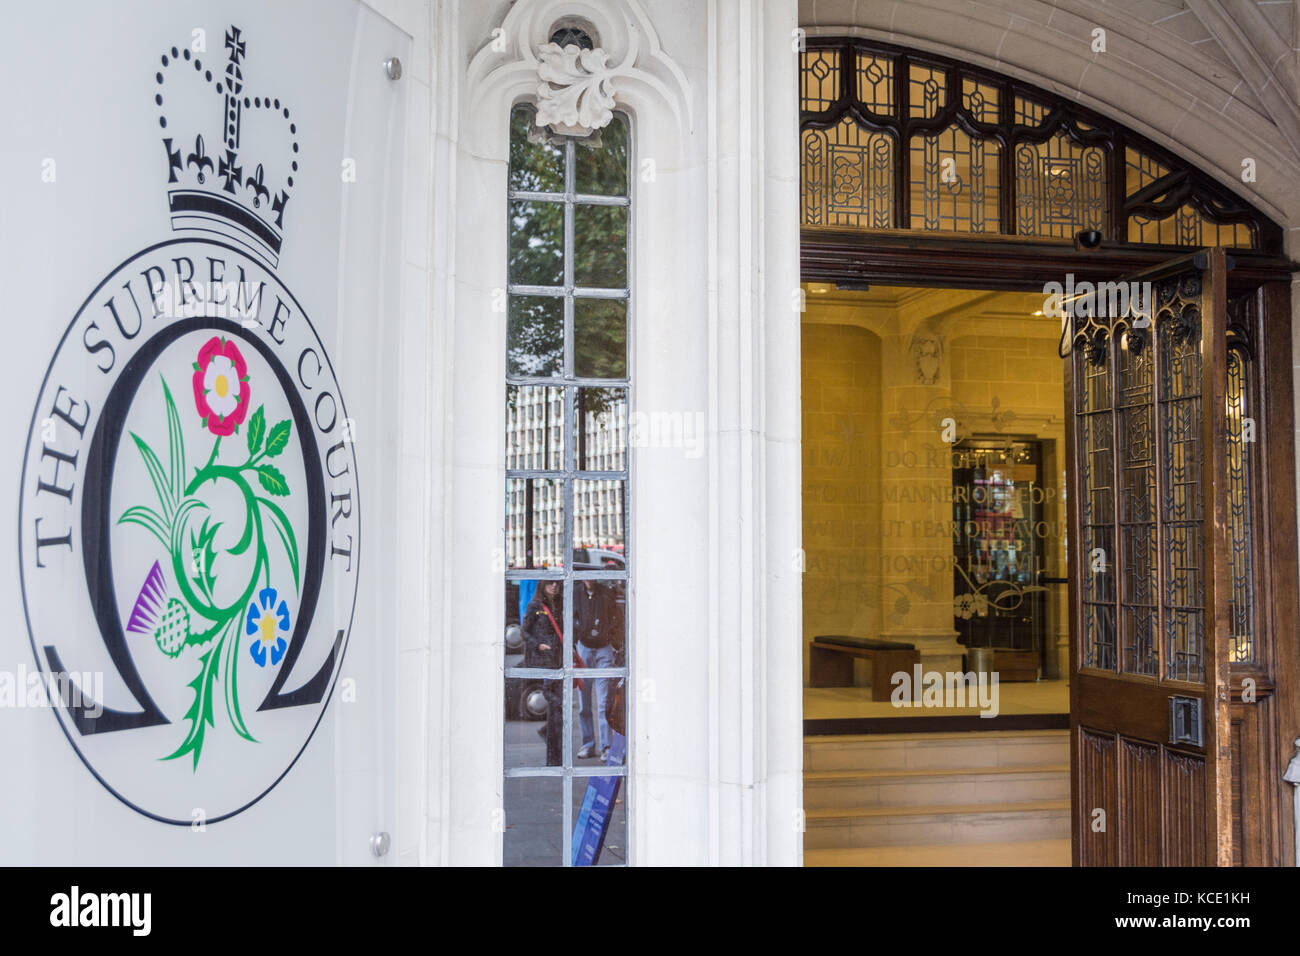 The exterior of the Supreme Court of the United Kingdom in Parliament Square, London, UK Stock Photo